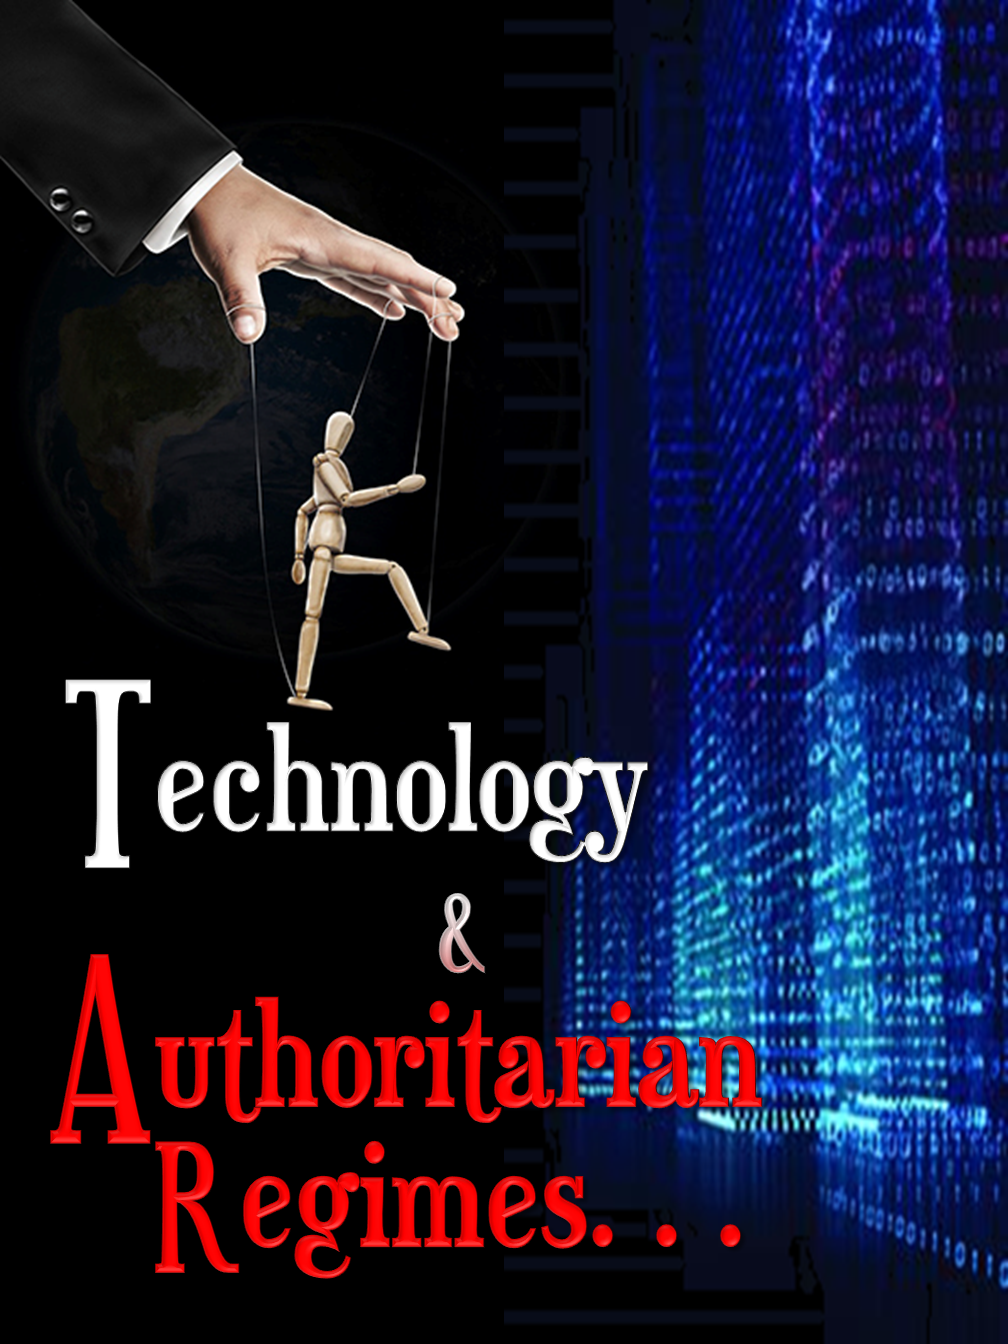 Technology & Authoritarian Regimes